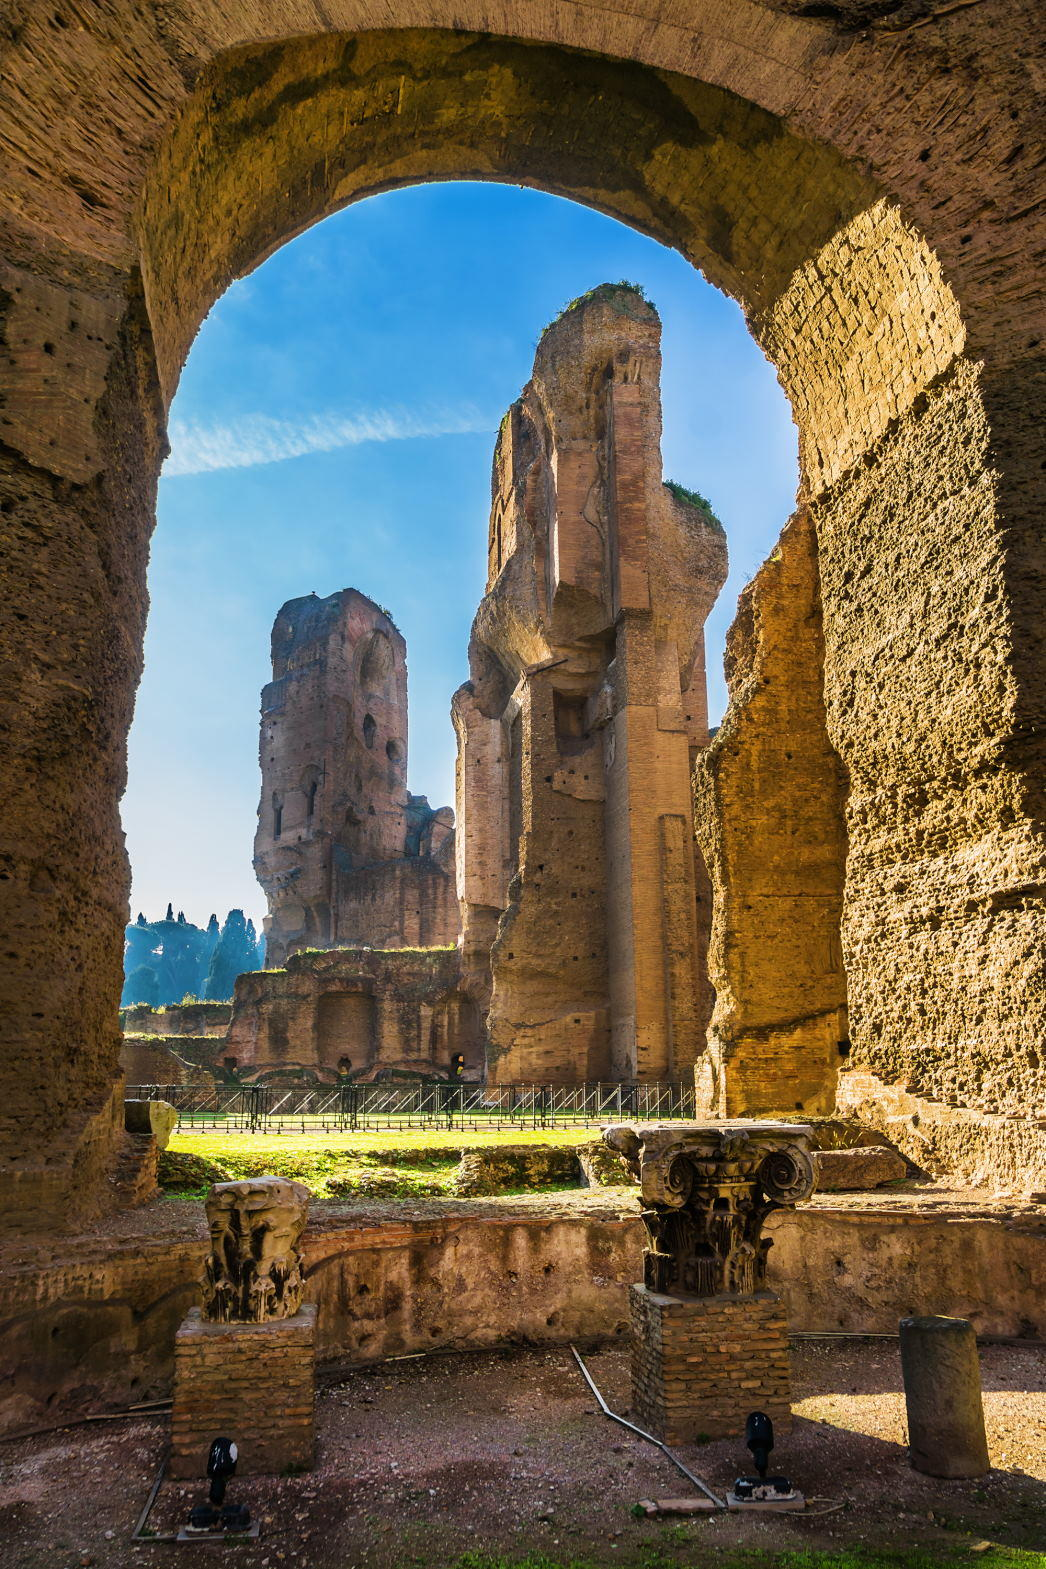 Ruins of the Baths of Caracalla (Terme di Caracalla). These were one of the most important baths of Rome at the time of the Roman Empire.